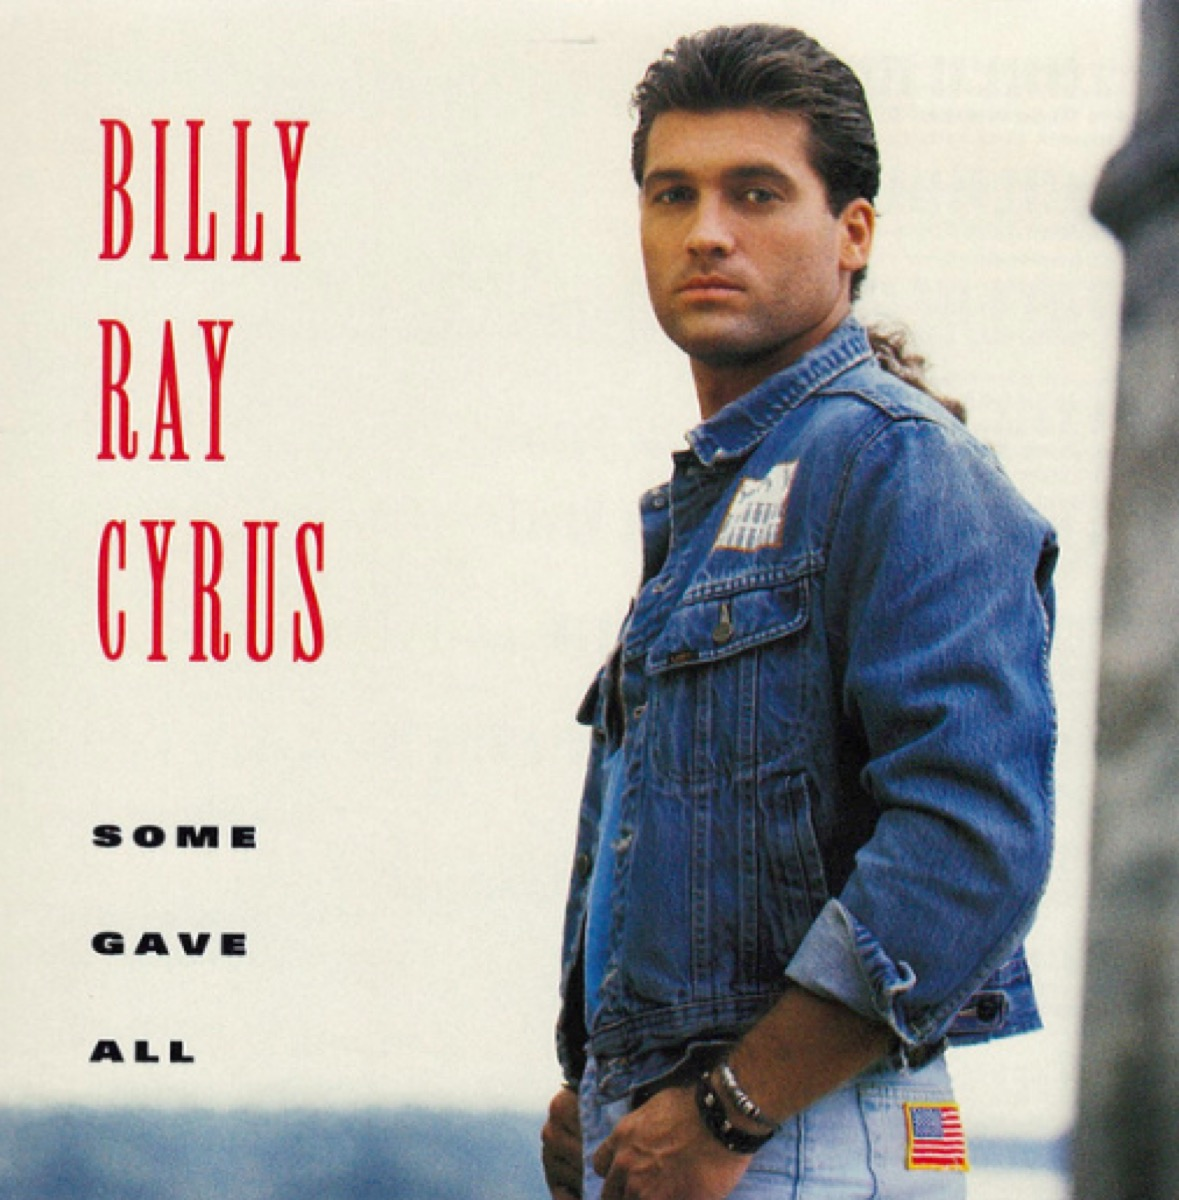 Some Gave All Billy Ray Cyrus album